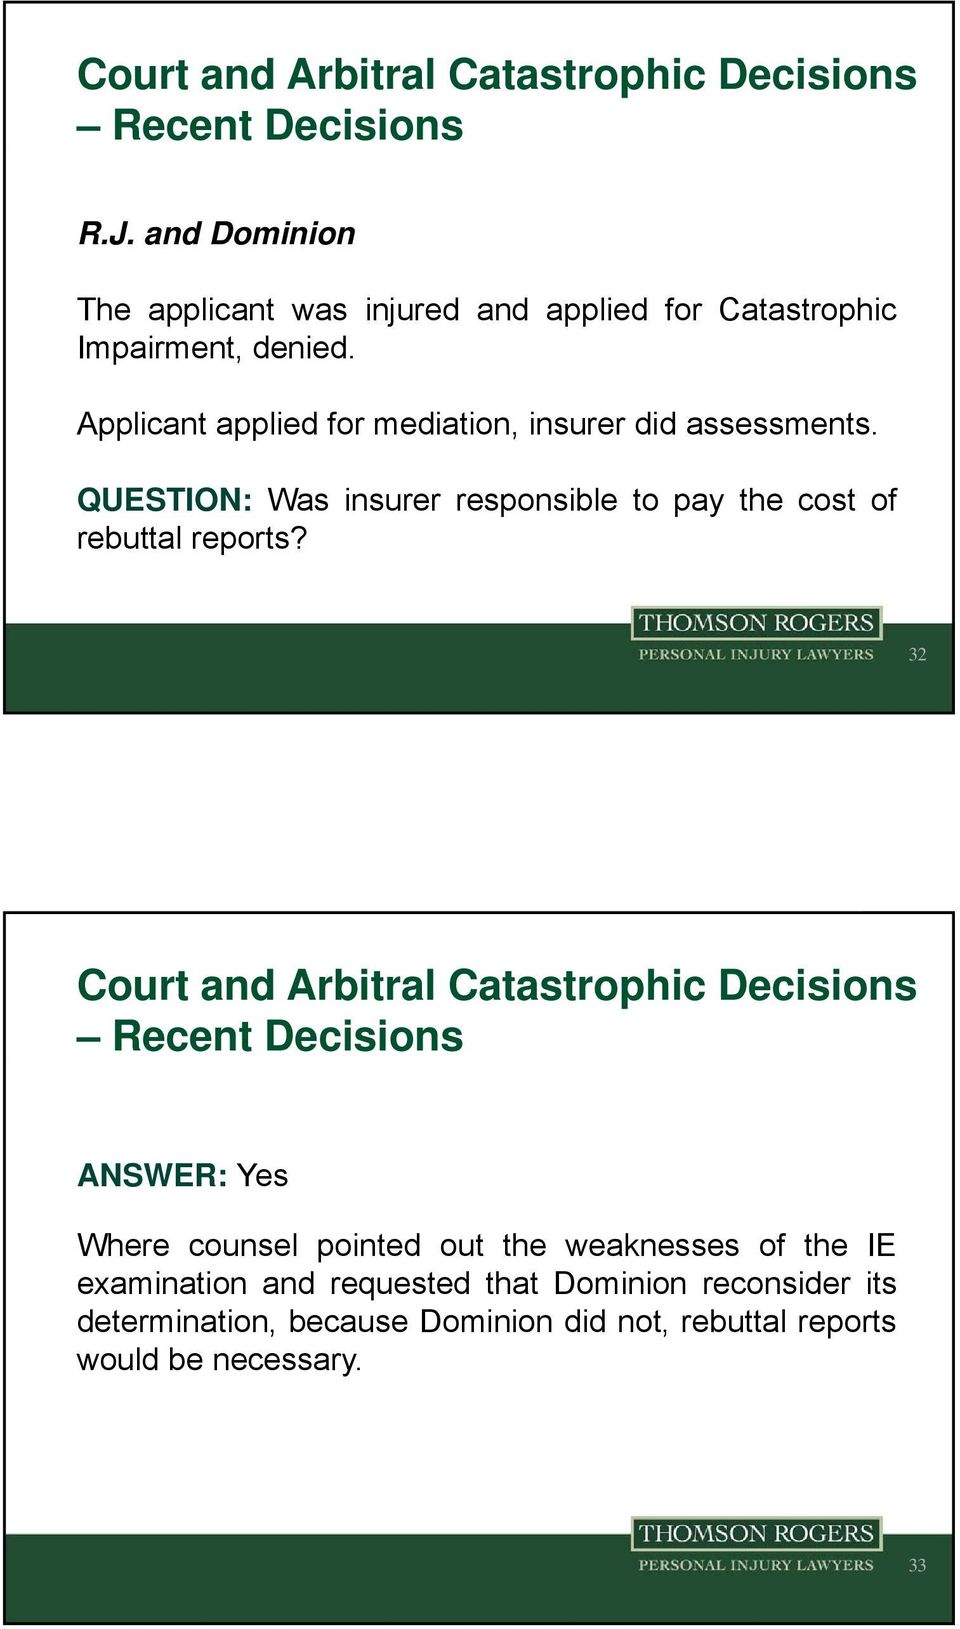 QUESTION: Was insurer responsible to pay the cost of rebuttal reports?